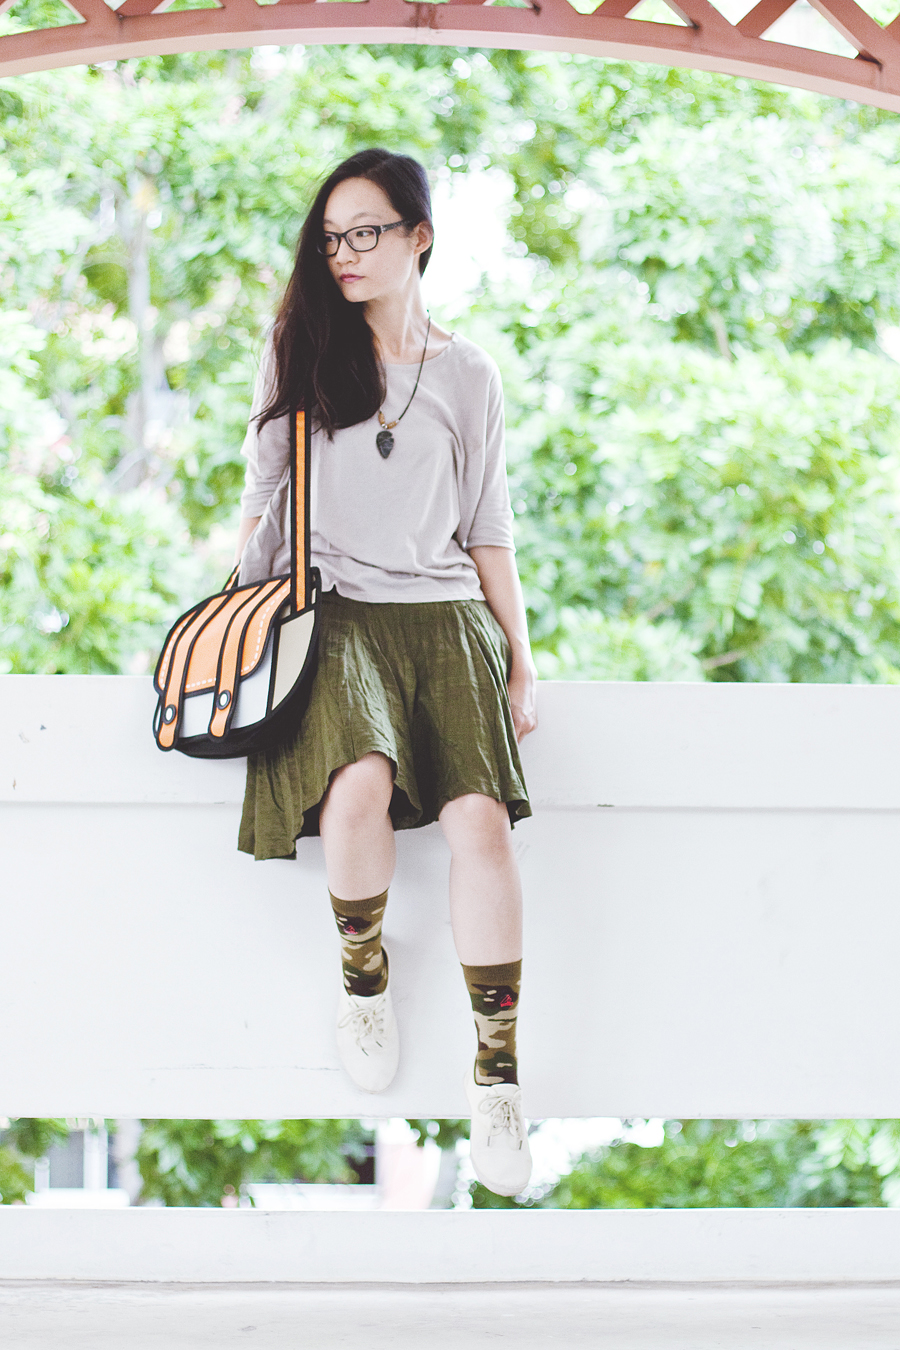 Forever 21 dolman sleeve top, agate necklace from Natural History Museum in Washington, Gap black rim glasses, Stance camo socks, Cotton On lace-ups, green flare skirt, orange 2D sling bag.